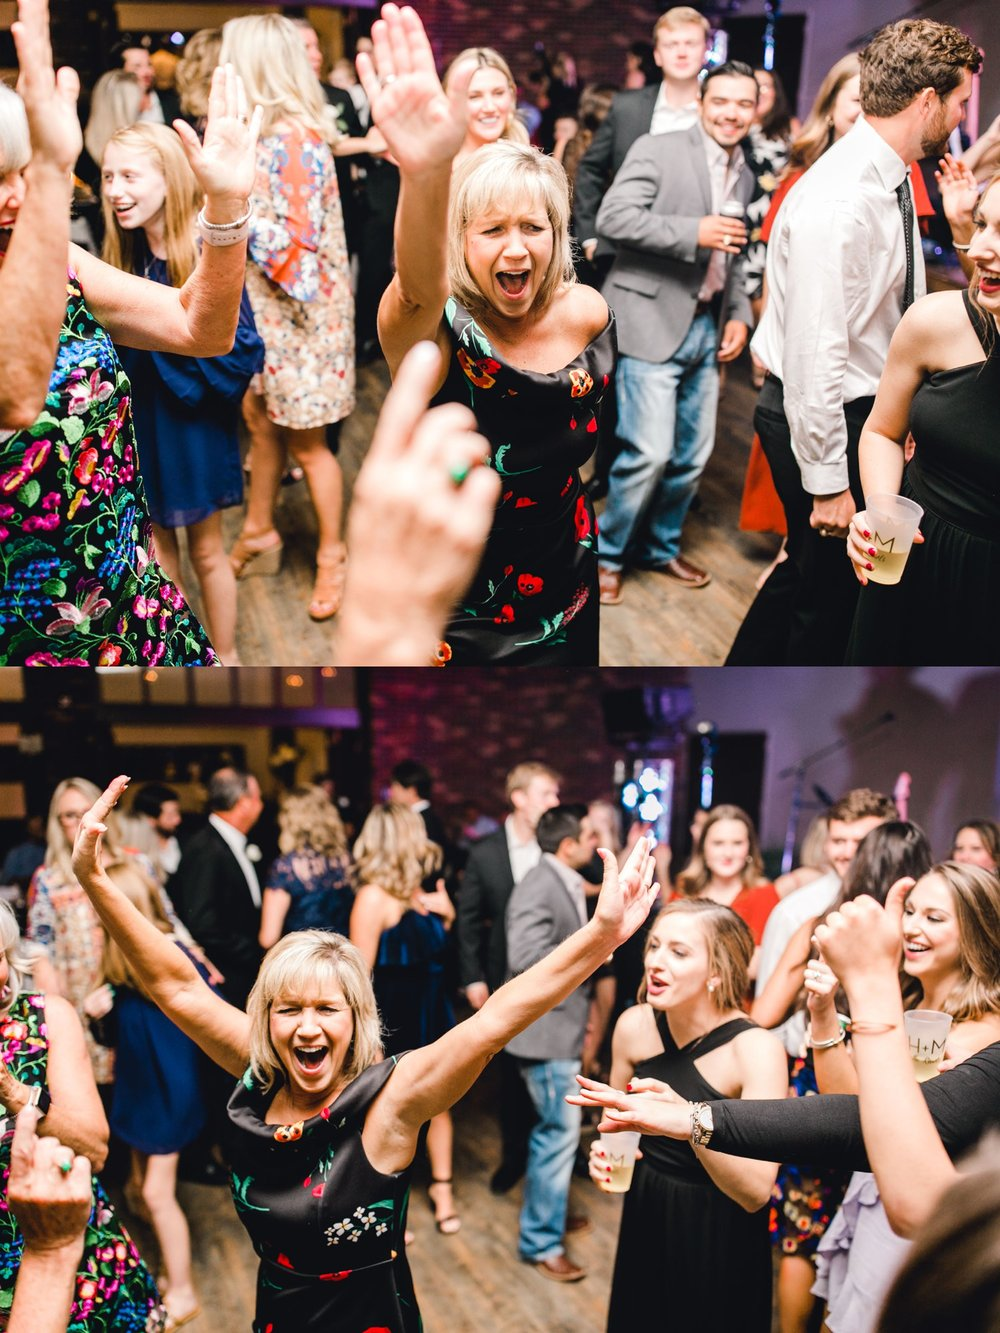 Hunter_and_Molly_Rawls_ALLEEJ_Lubbock_WEDDING_Legacy_Event_Center_0199.jpg